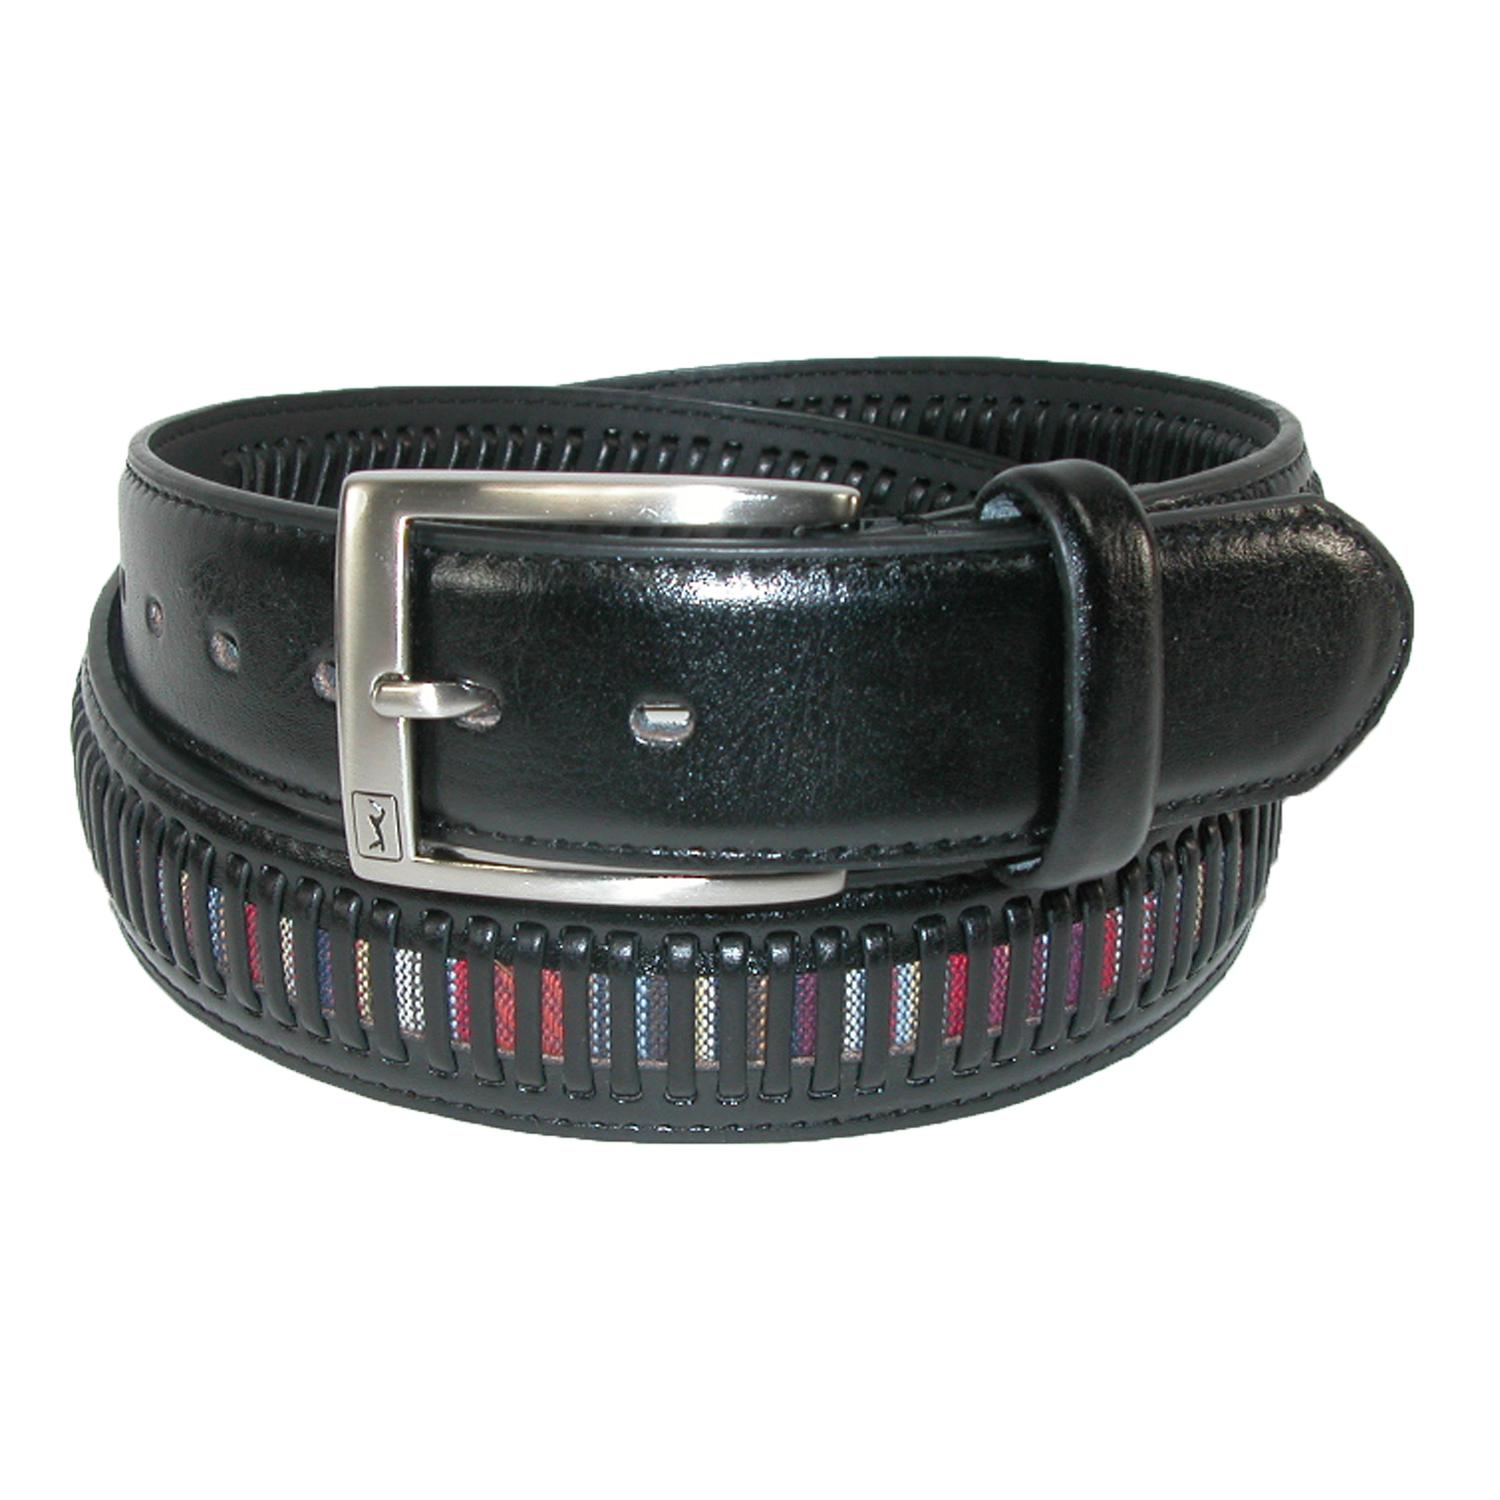 Pga Mens Leather Golf Belt With Fabric Inlay